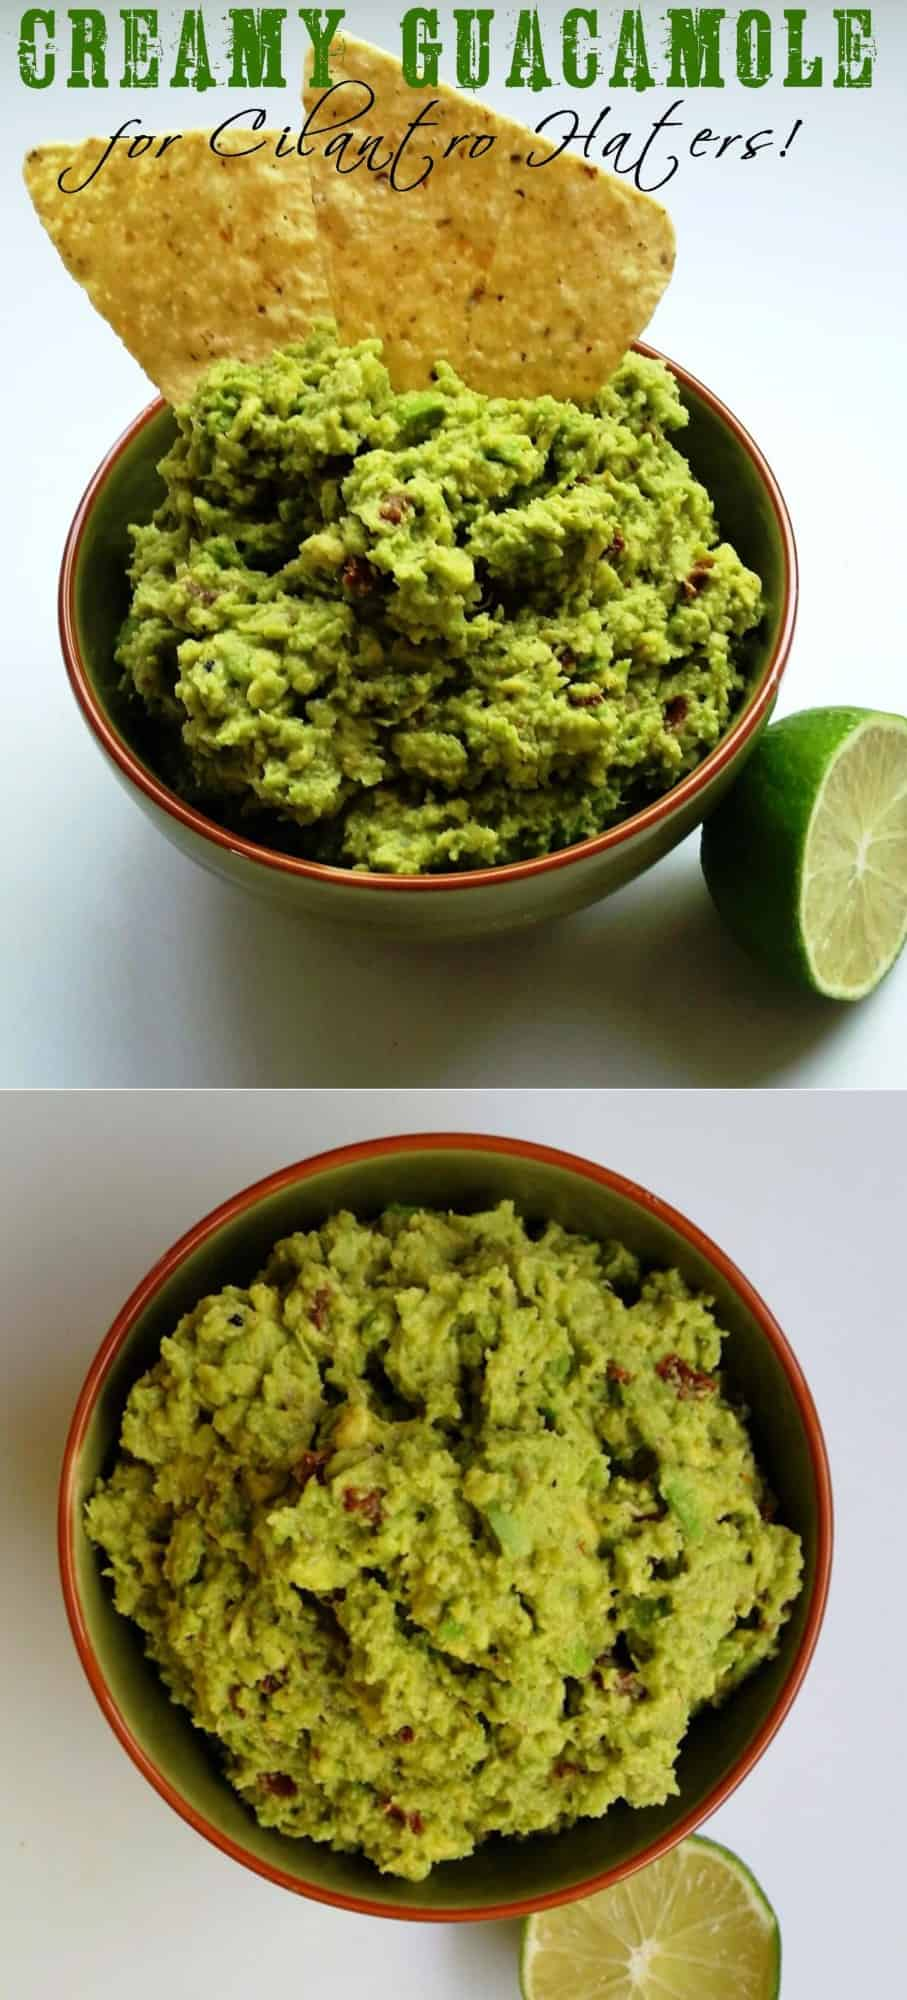 Creamy Guacamole for Cilantro Haters